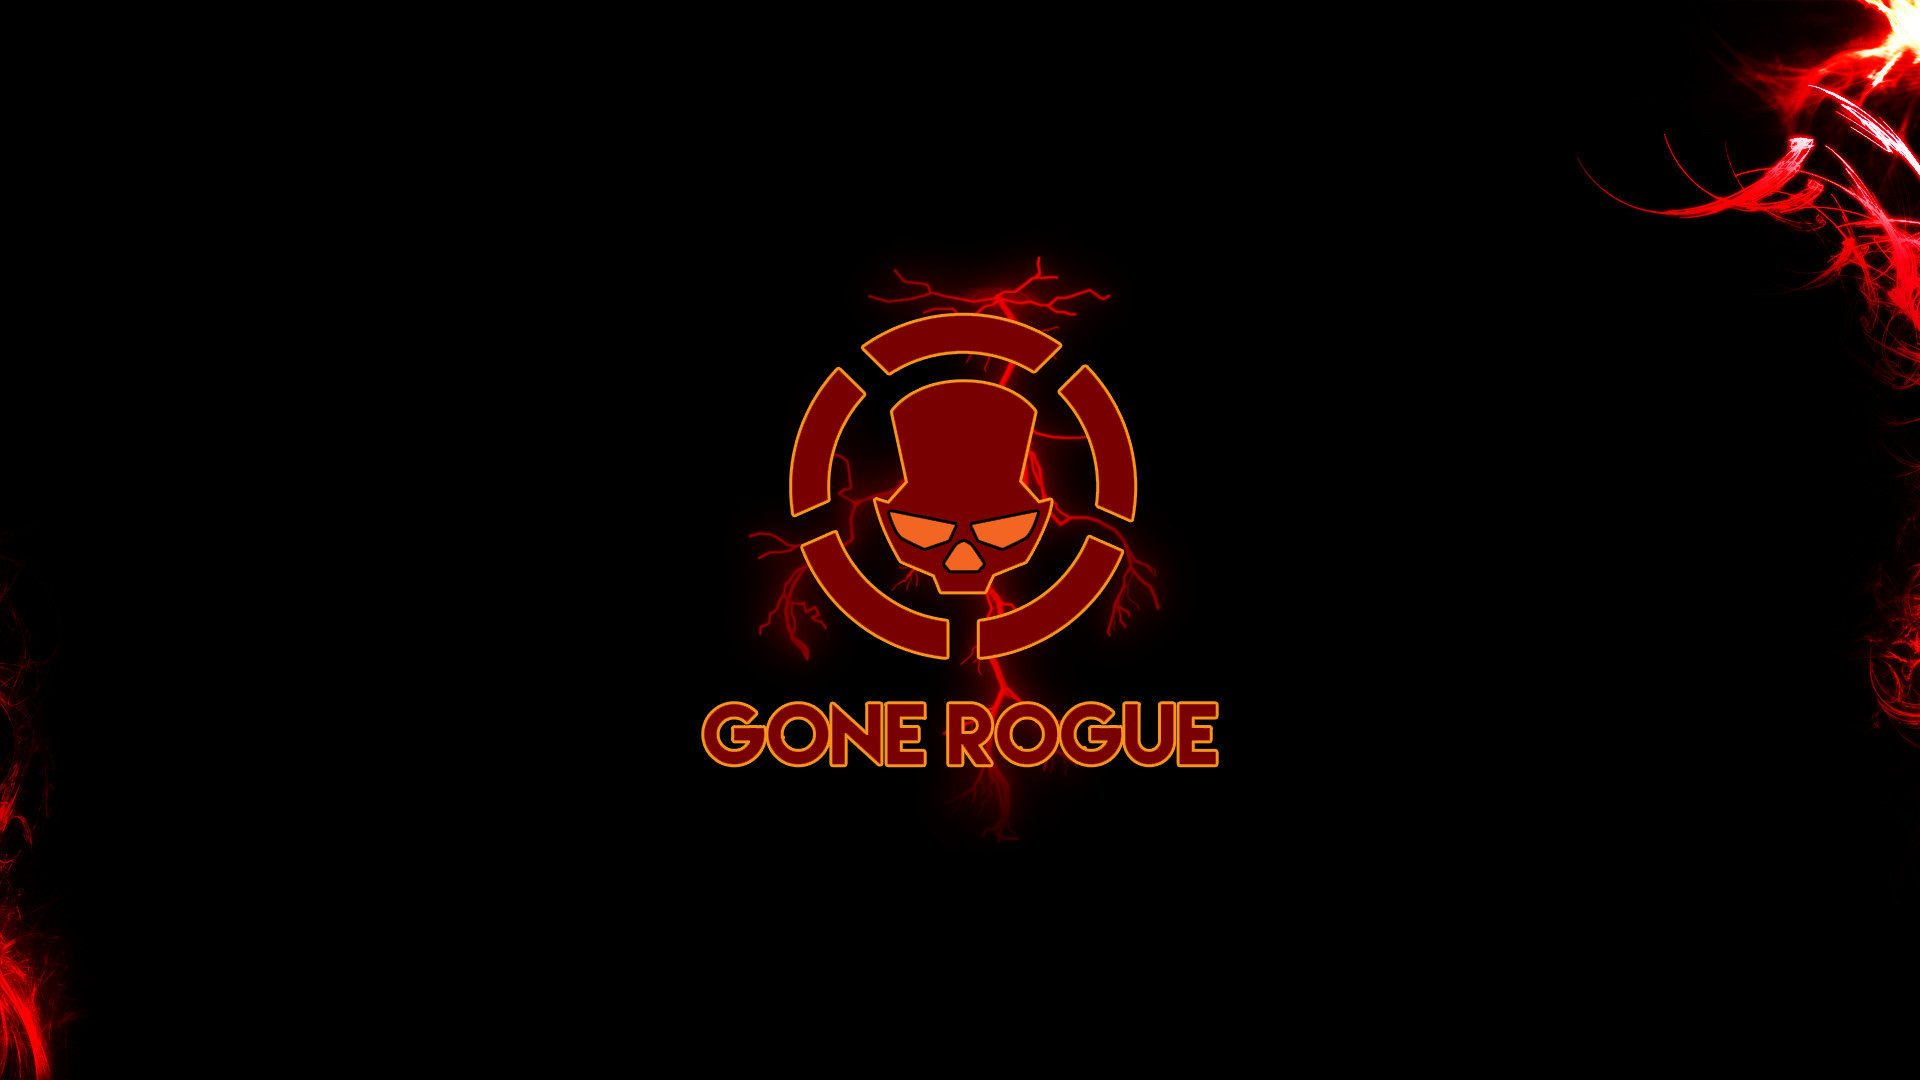 1920x1080 ... GONE ROGUE - Tom Clancy's The Division Wallpaper by Evanjoe251